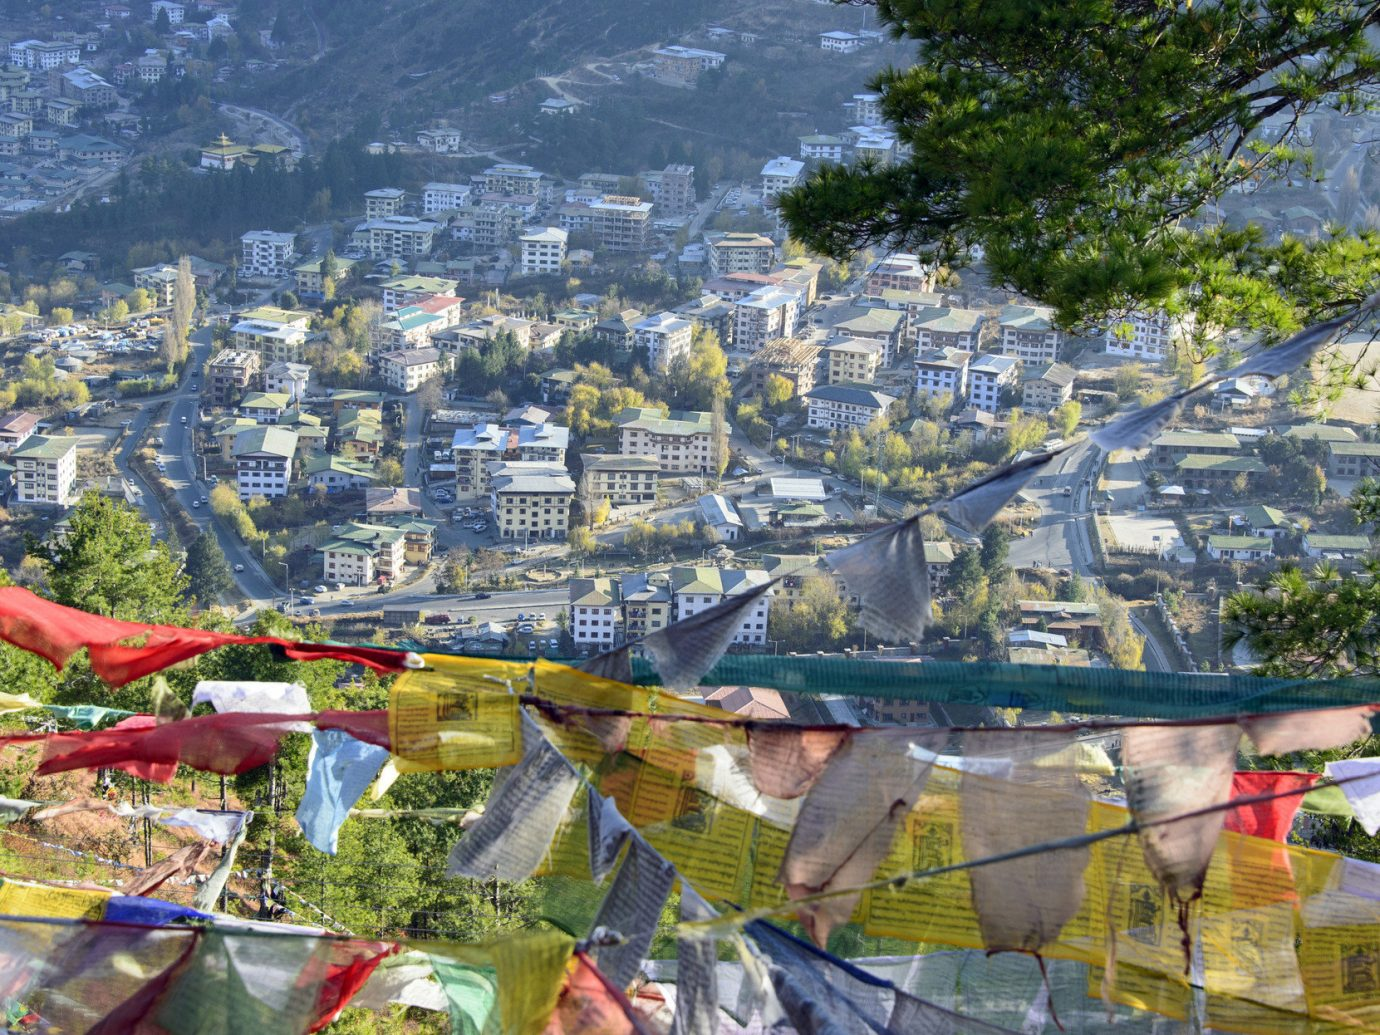 Travel Tips outdoor Town City human settlement cityscape tourism aerial photography flower park